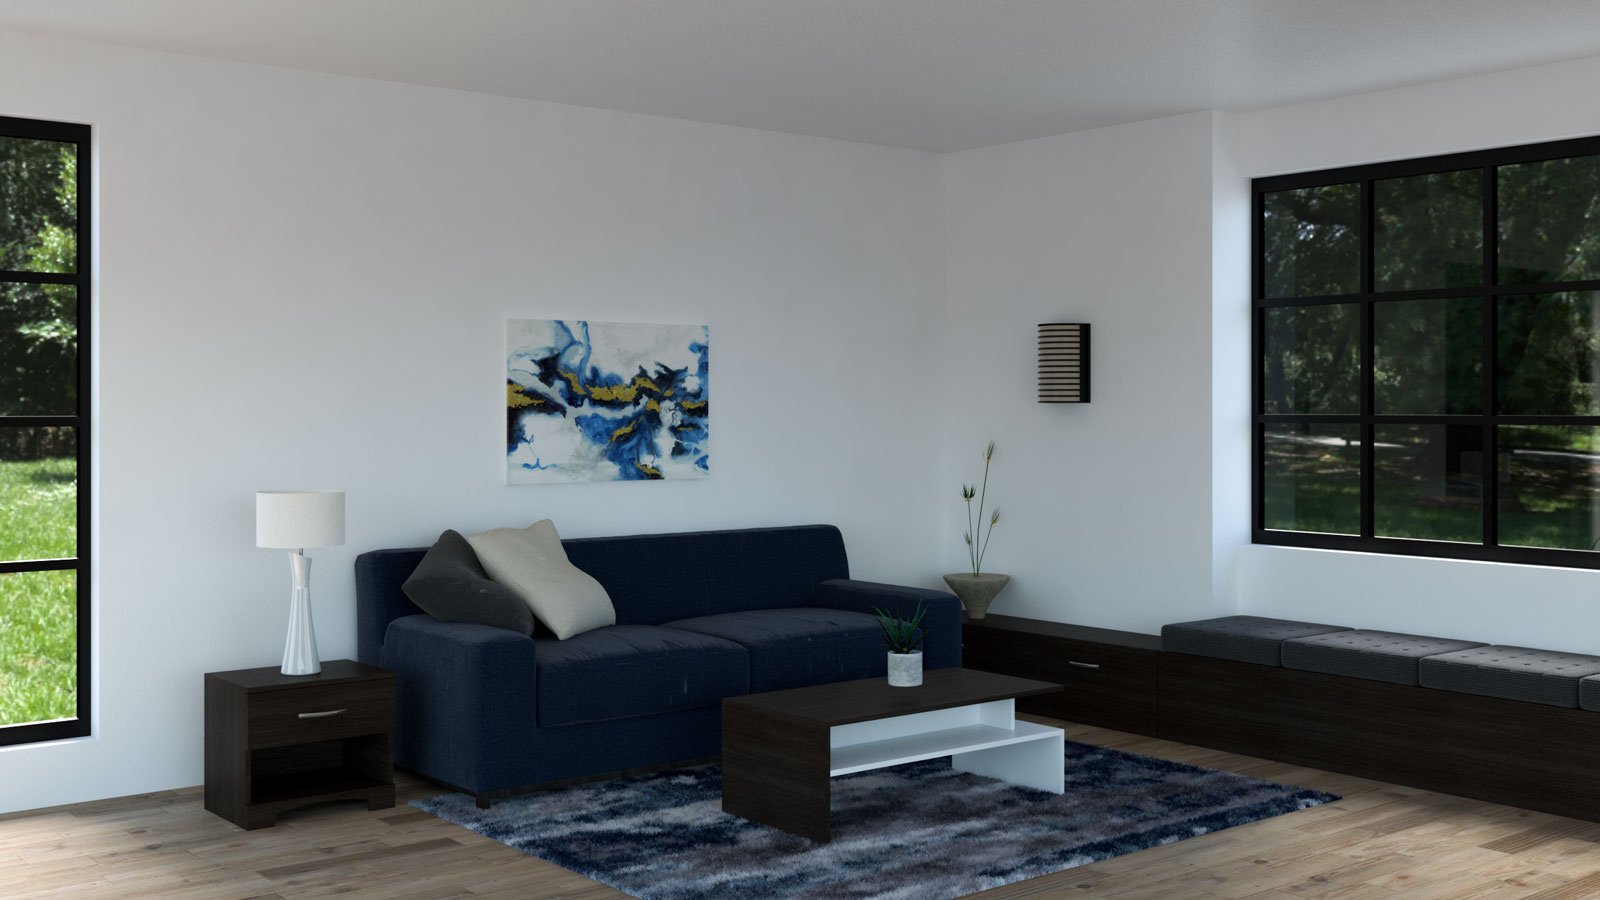 Living room with navy couch and espresso furnishings